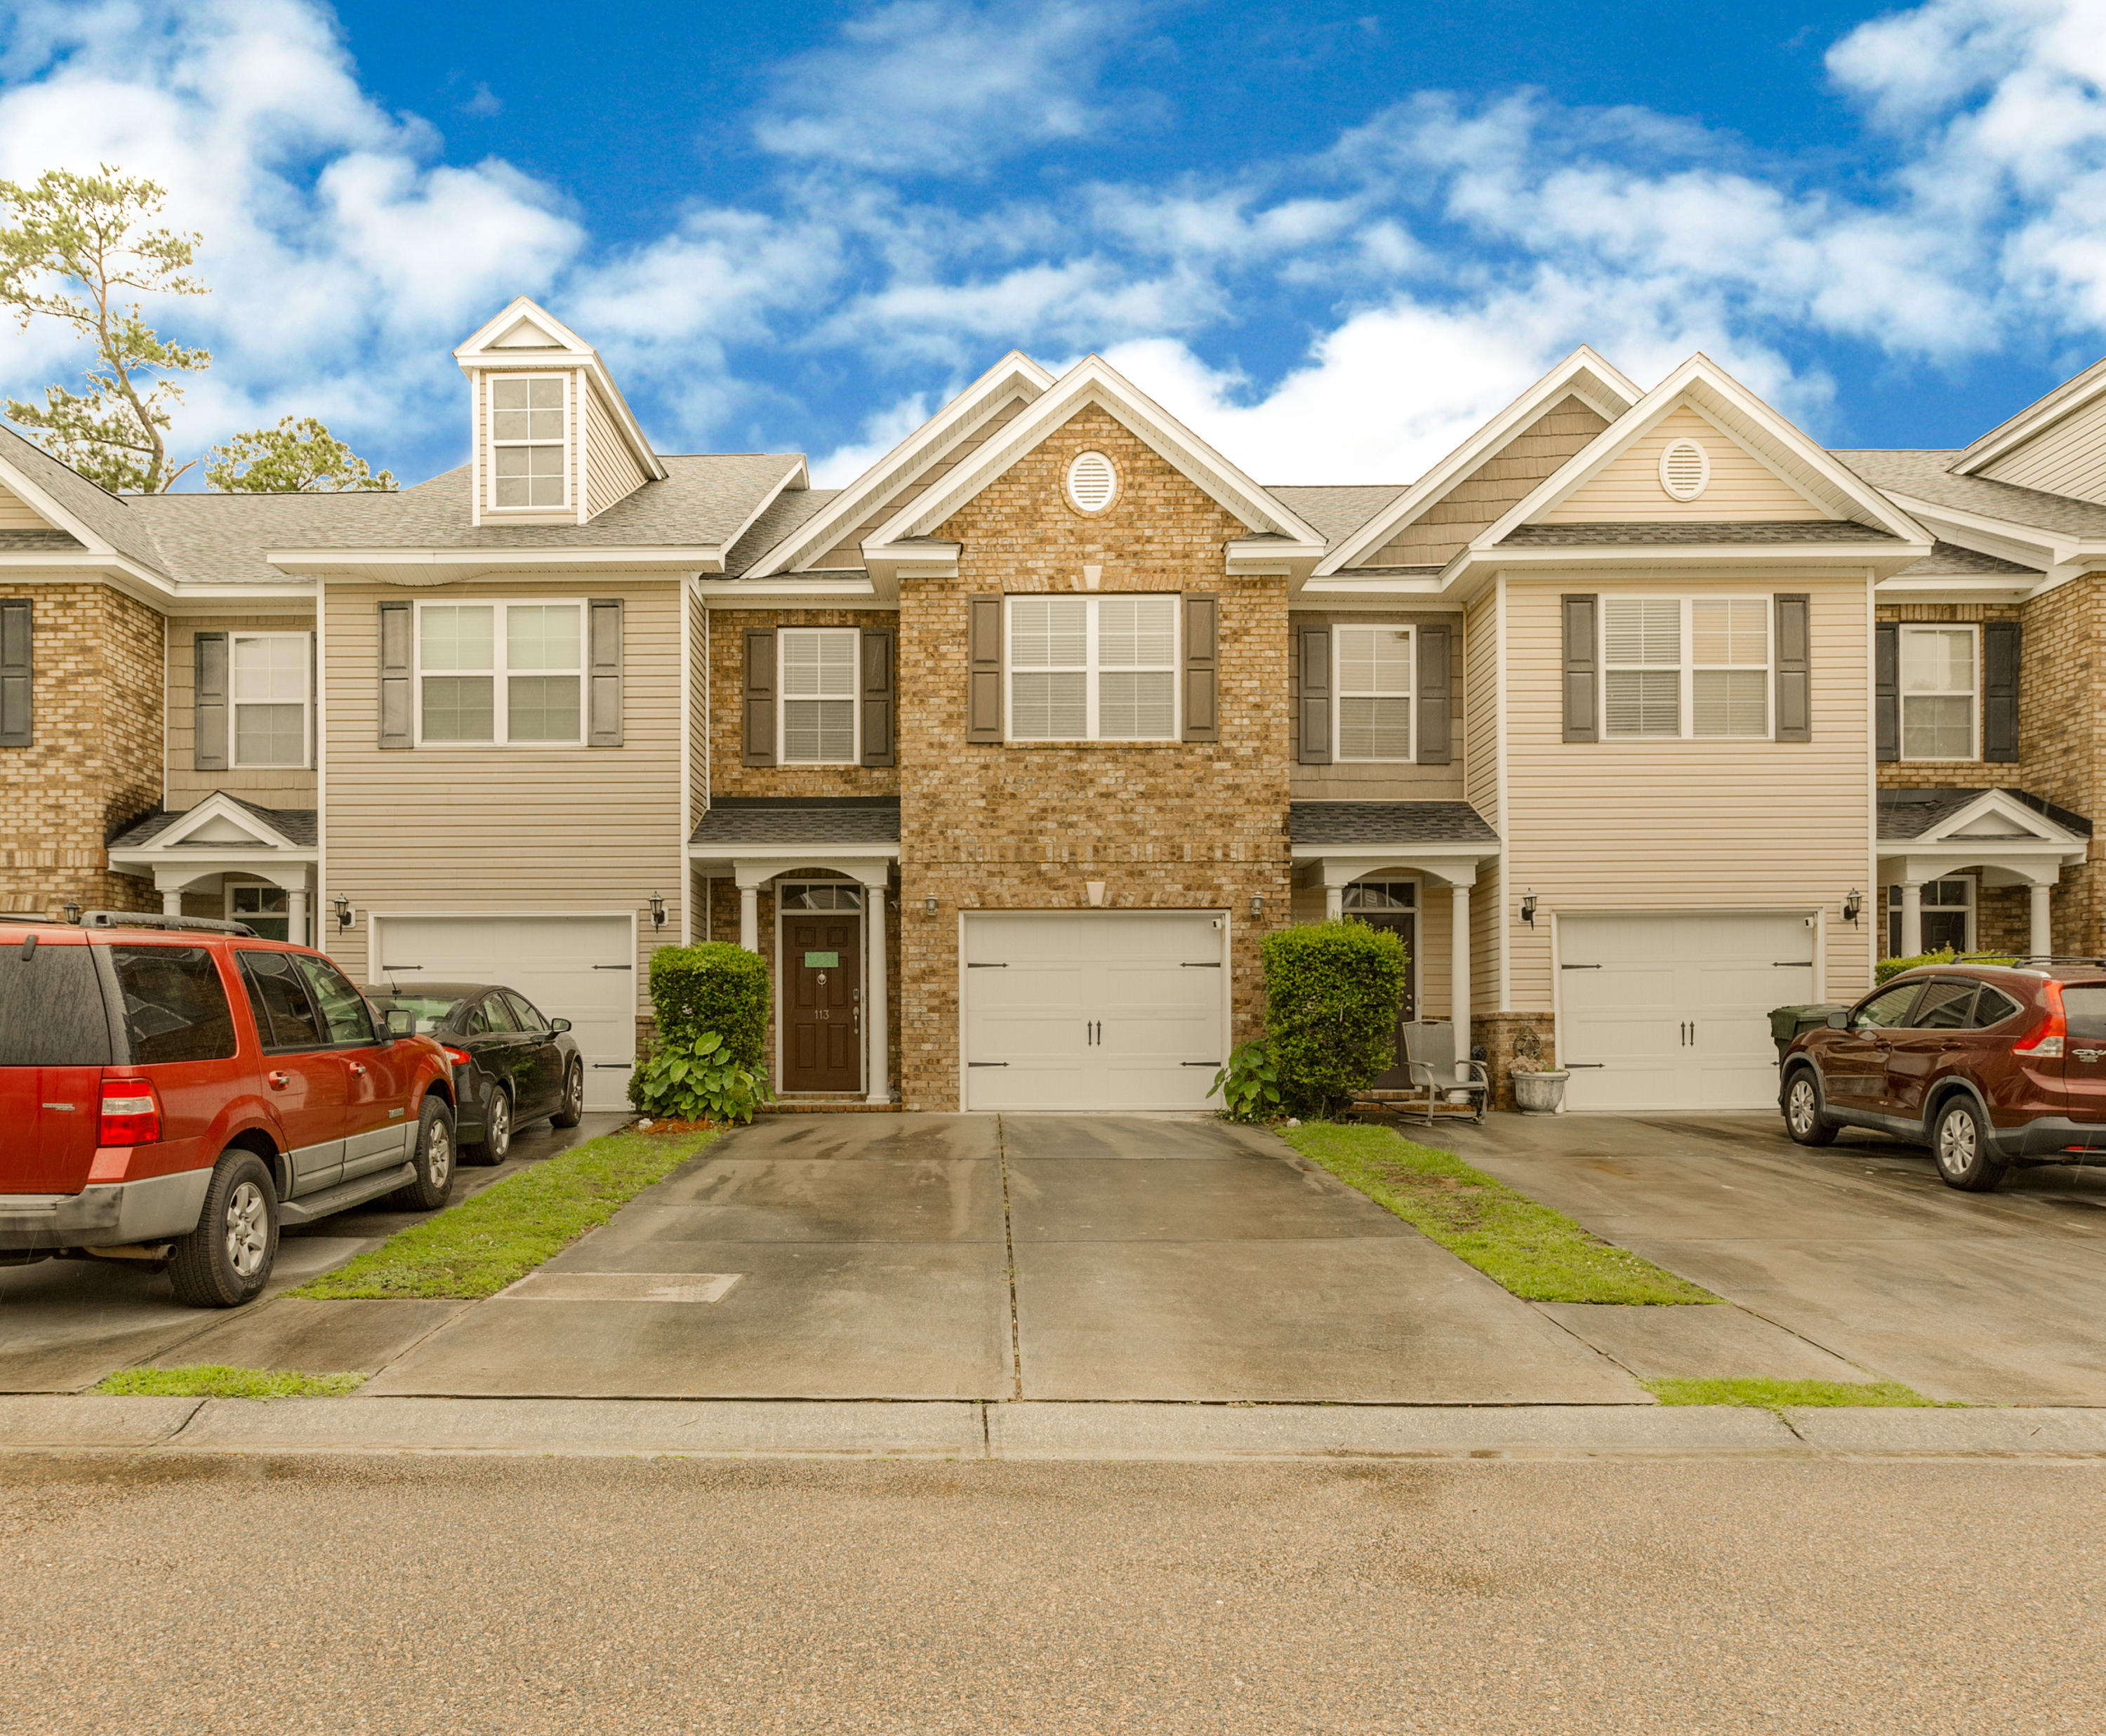 Berkeley Commons Townhomes Homes For Sale - 113 Lamplighter, Summerville, SC - 28